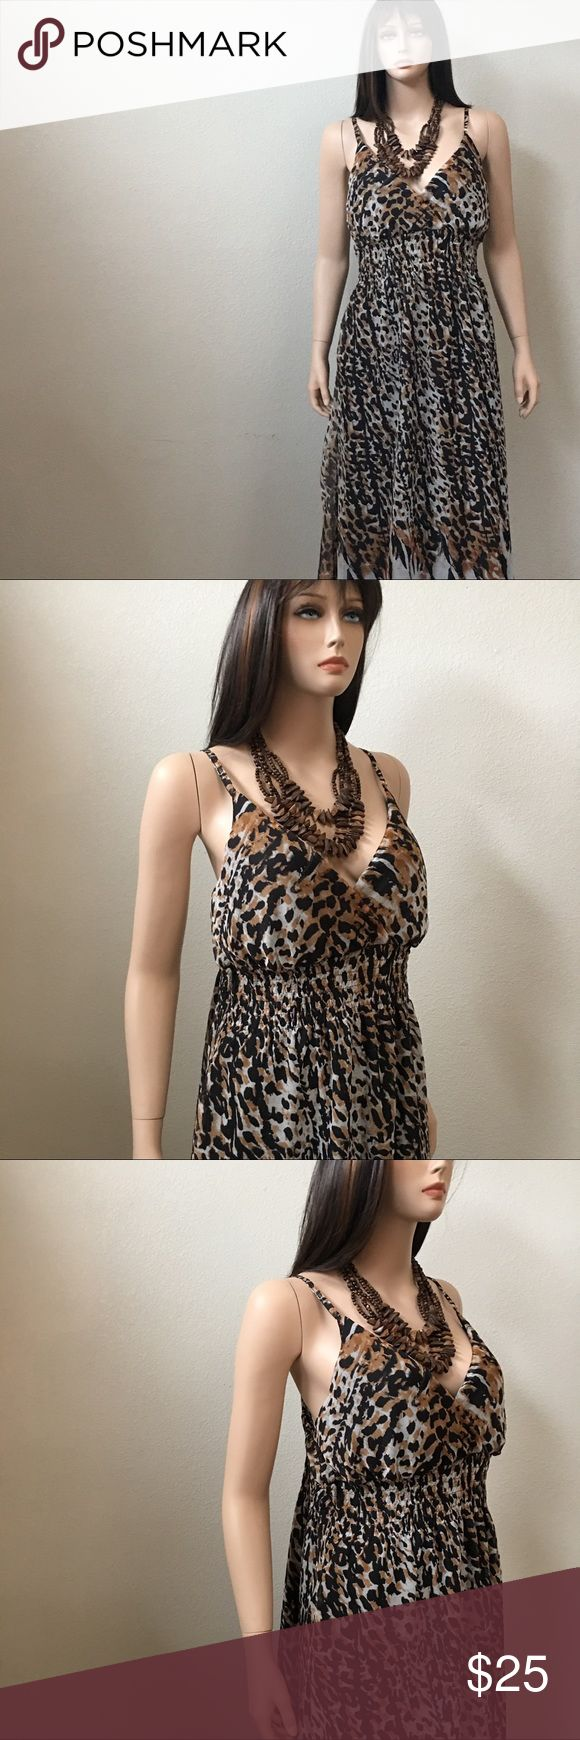 Summer animal print maxi dress by She'sCool 1X New You will look very pretty in this maxi dress by She's Cool . Beautiful animal print polyester , fully lined , surplice bodice and smocking at waistband . Size 1X . Junior . New She's Cool Dresses Maxi